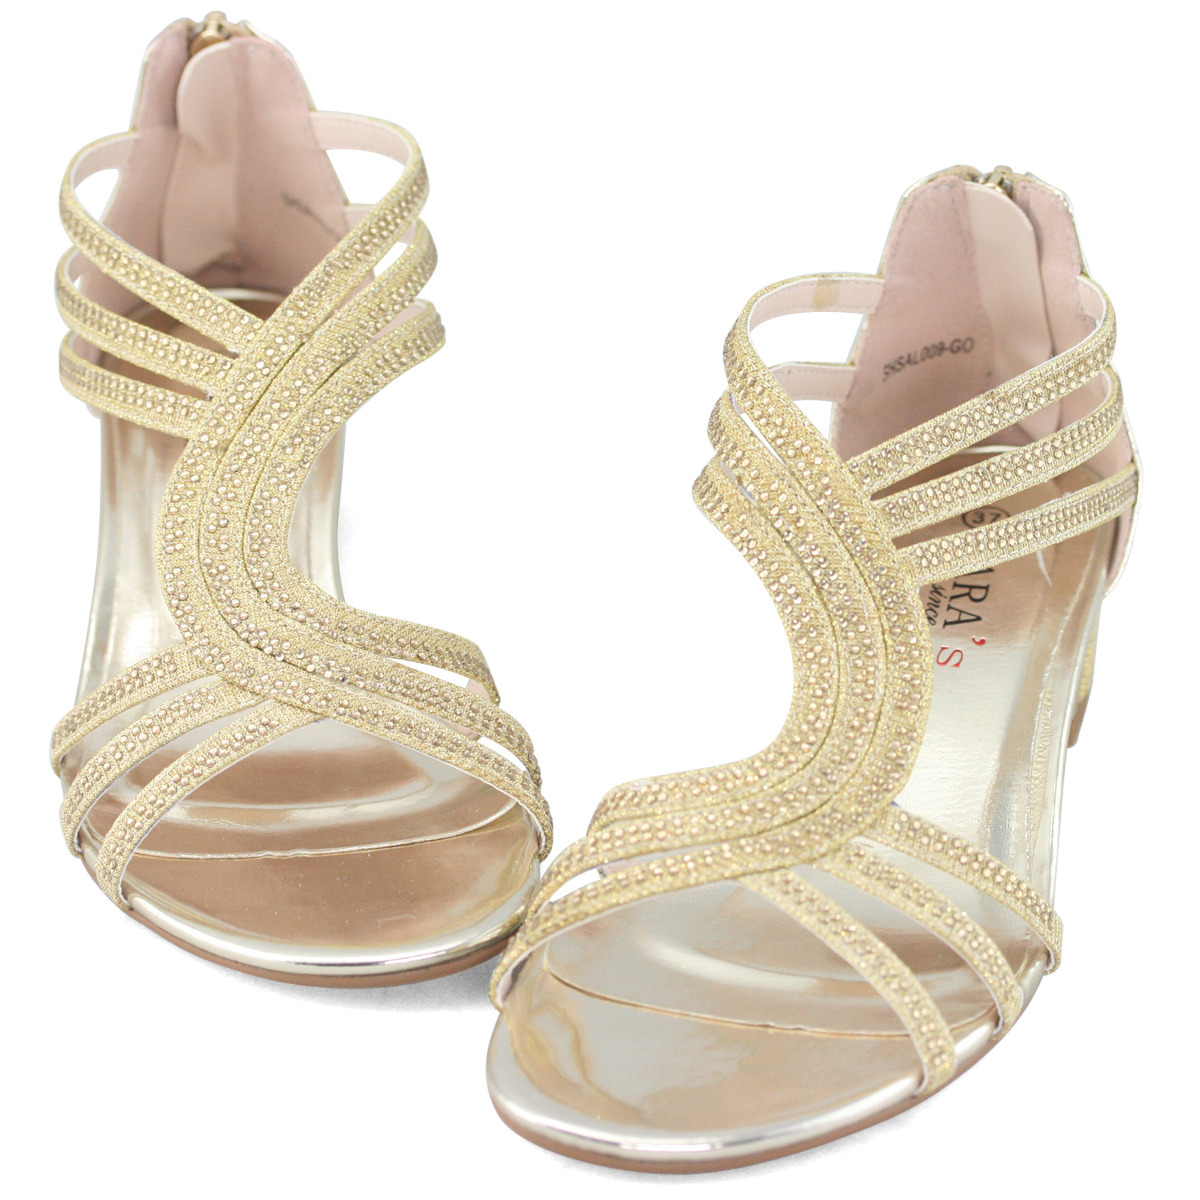 Womens diamante wedding dress shoes comfort silver gold for Gold dress sandals for wedding